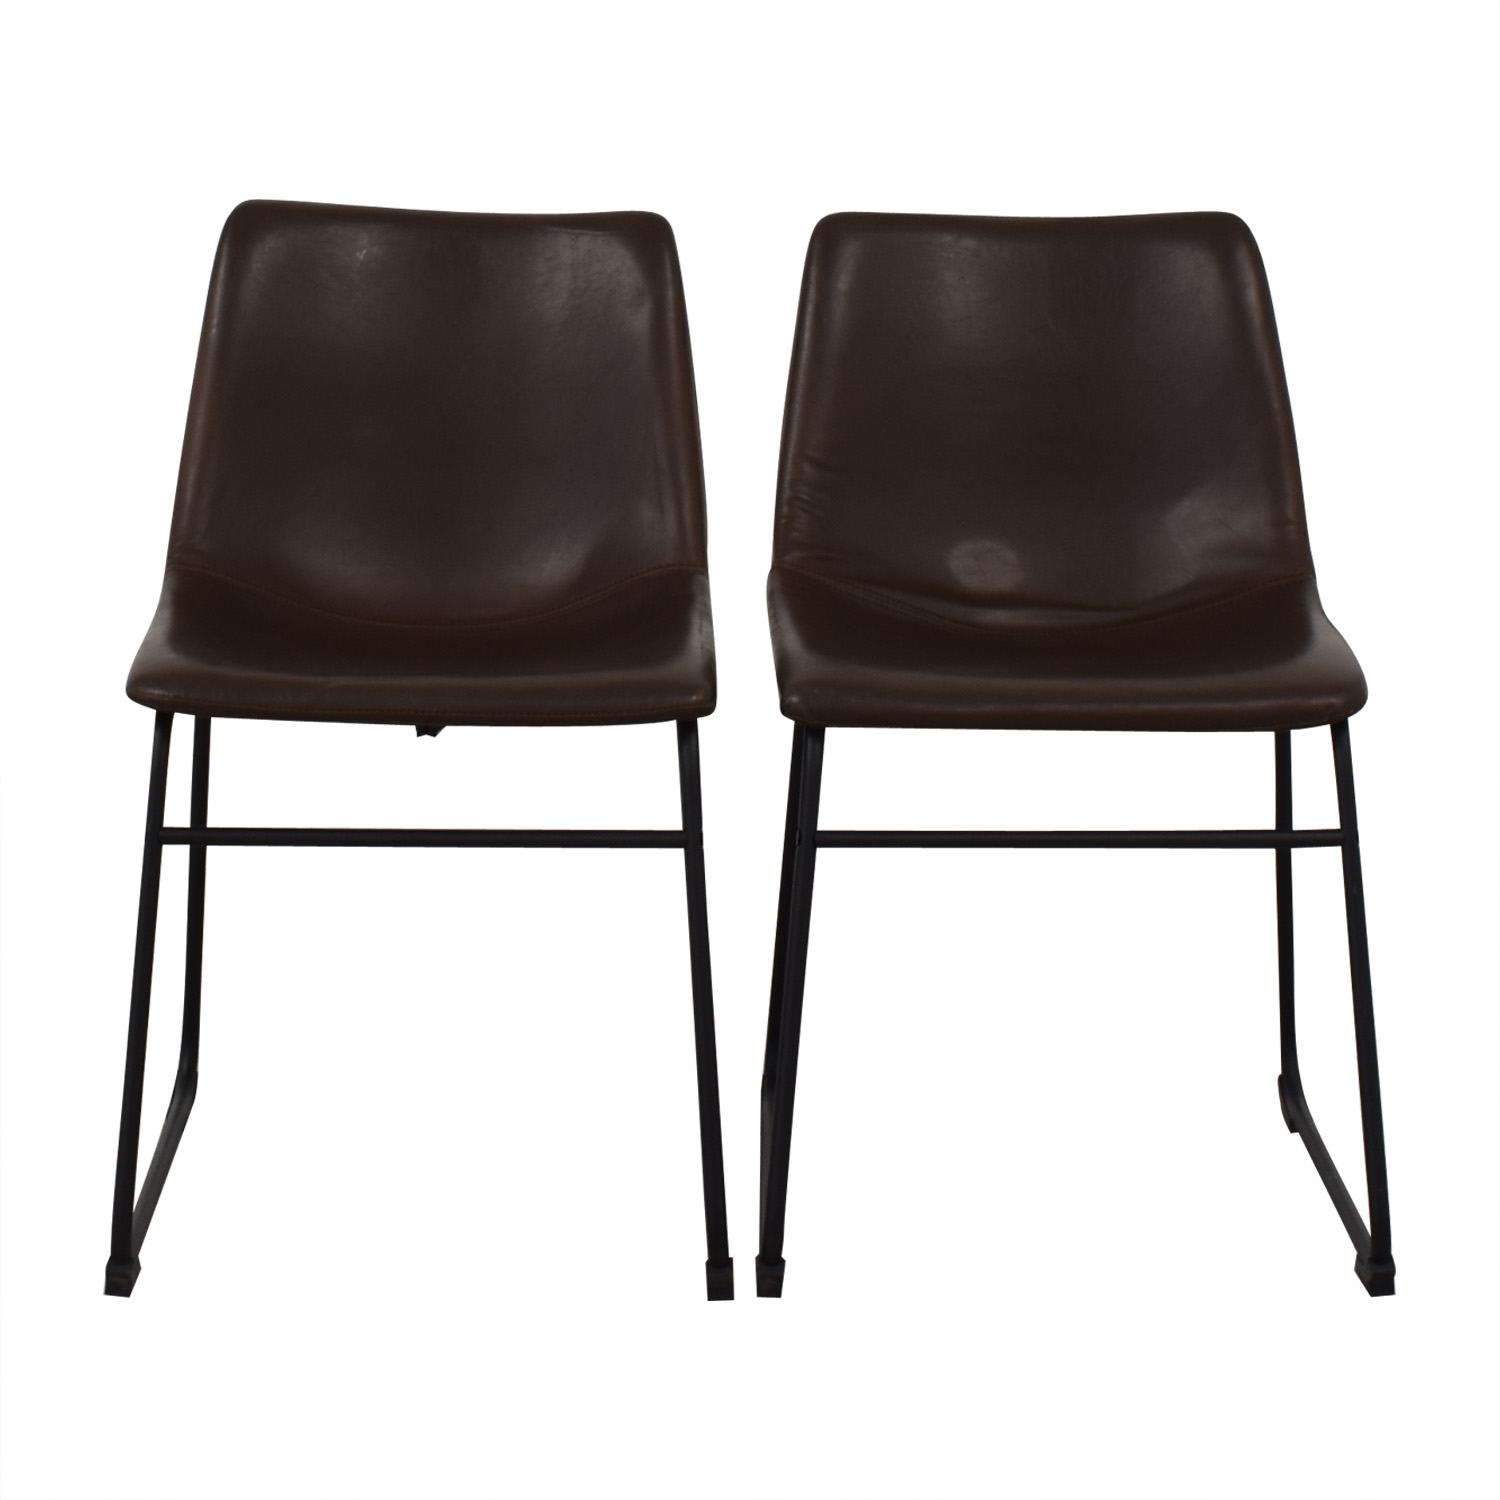 Walker Edison Walker Edison Industrial Faux Leather Dining Chairs dimensions